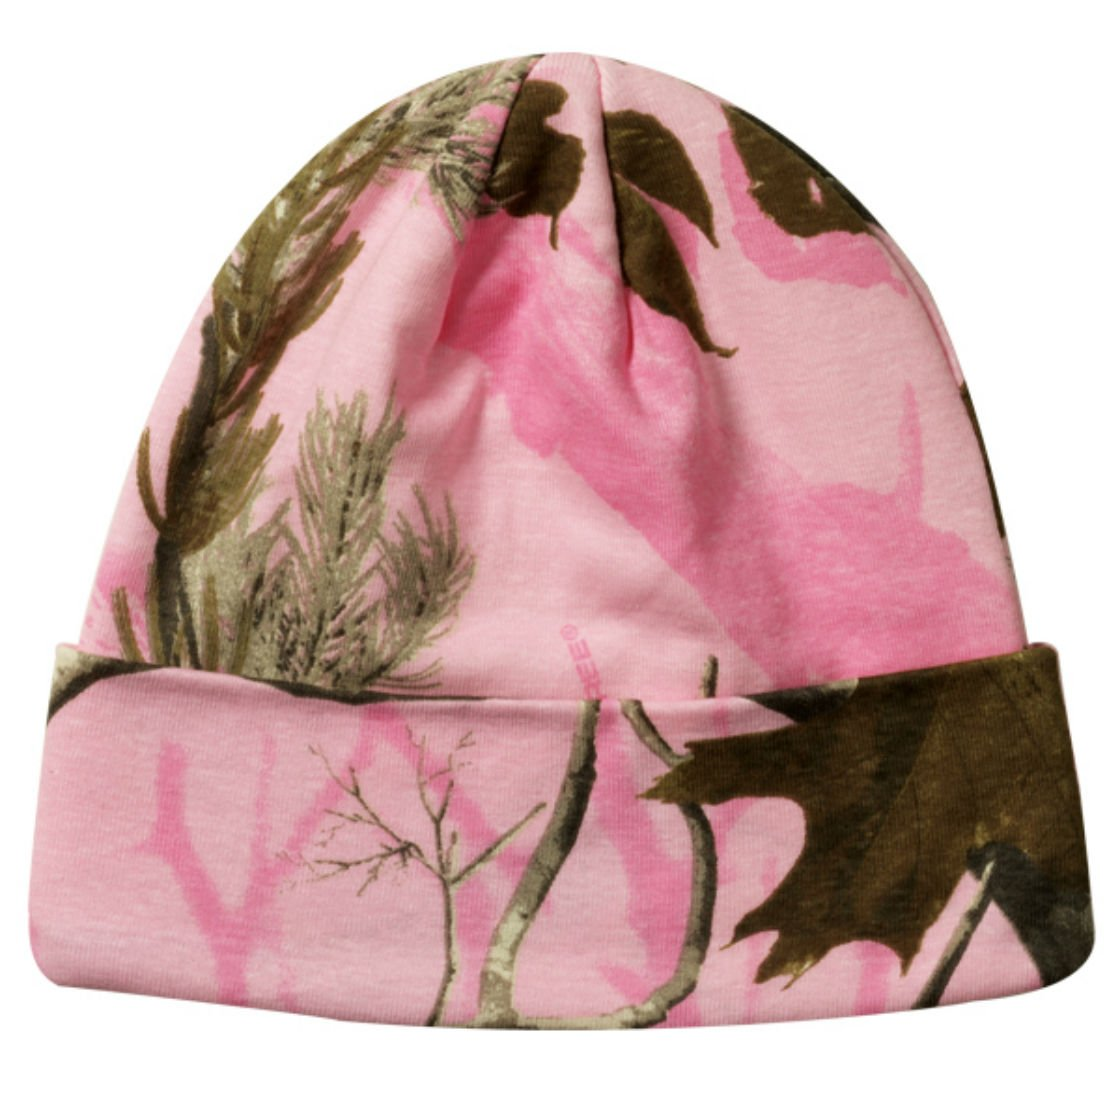 Realtree Licensed Camo Knit Cuff Beanie Pink by Realtree (Image #1)